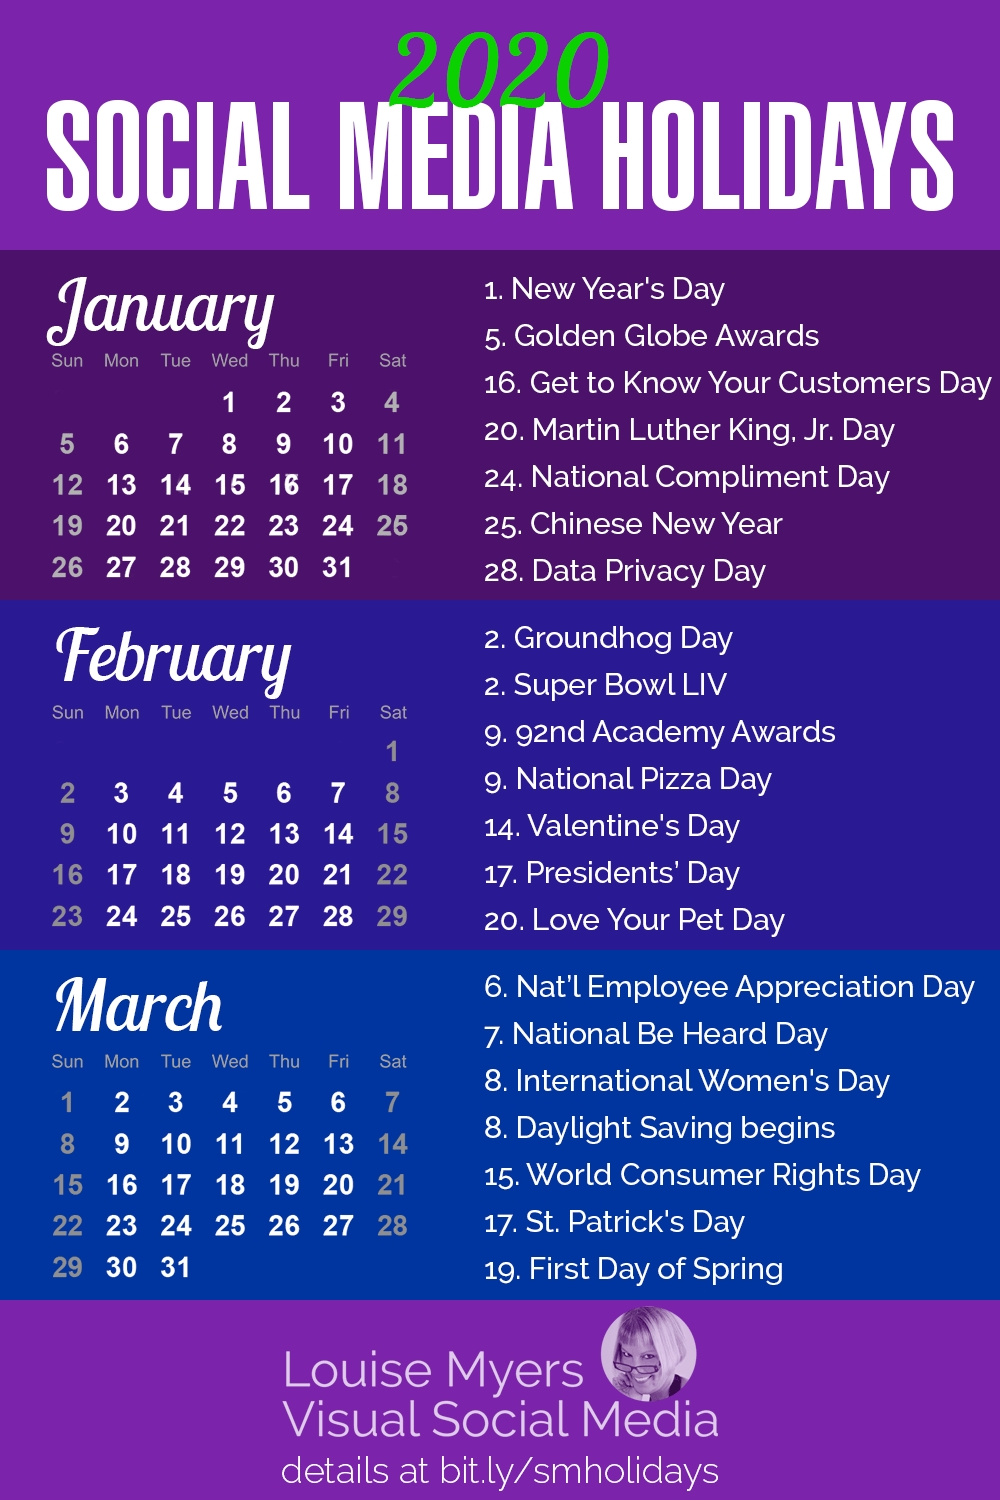 84 Social Media Holidays You Need In 2020: Indispensable! for National Day Calendar 2020 Printable List